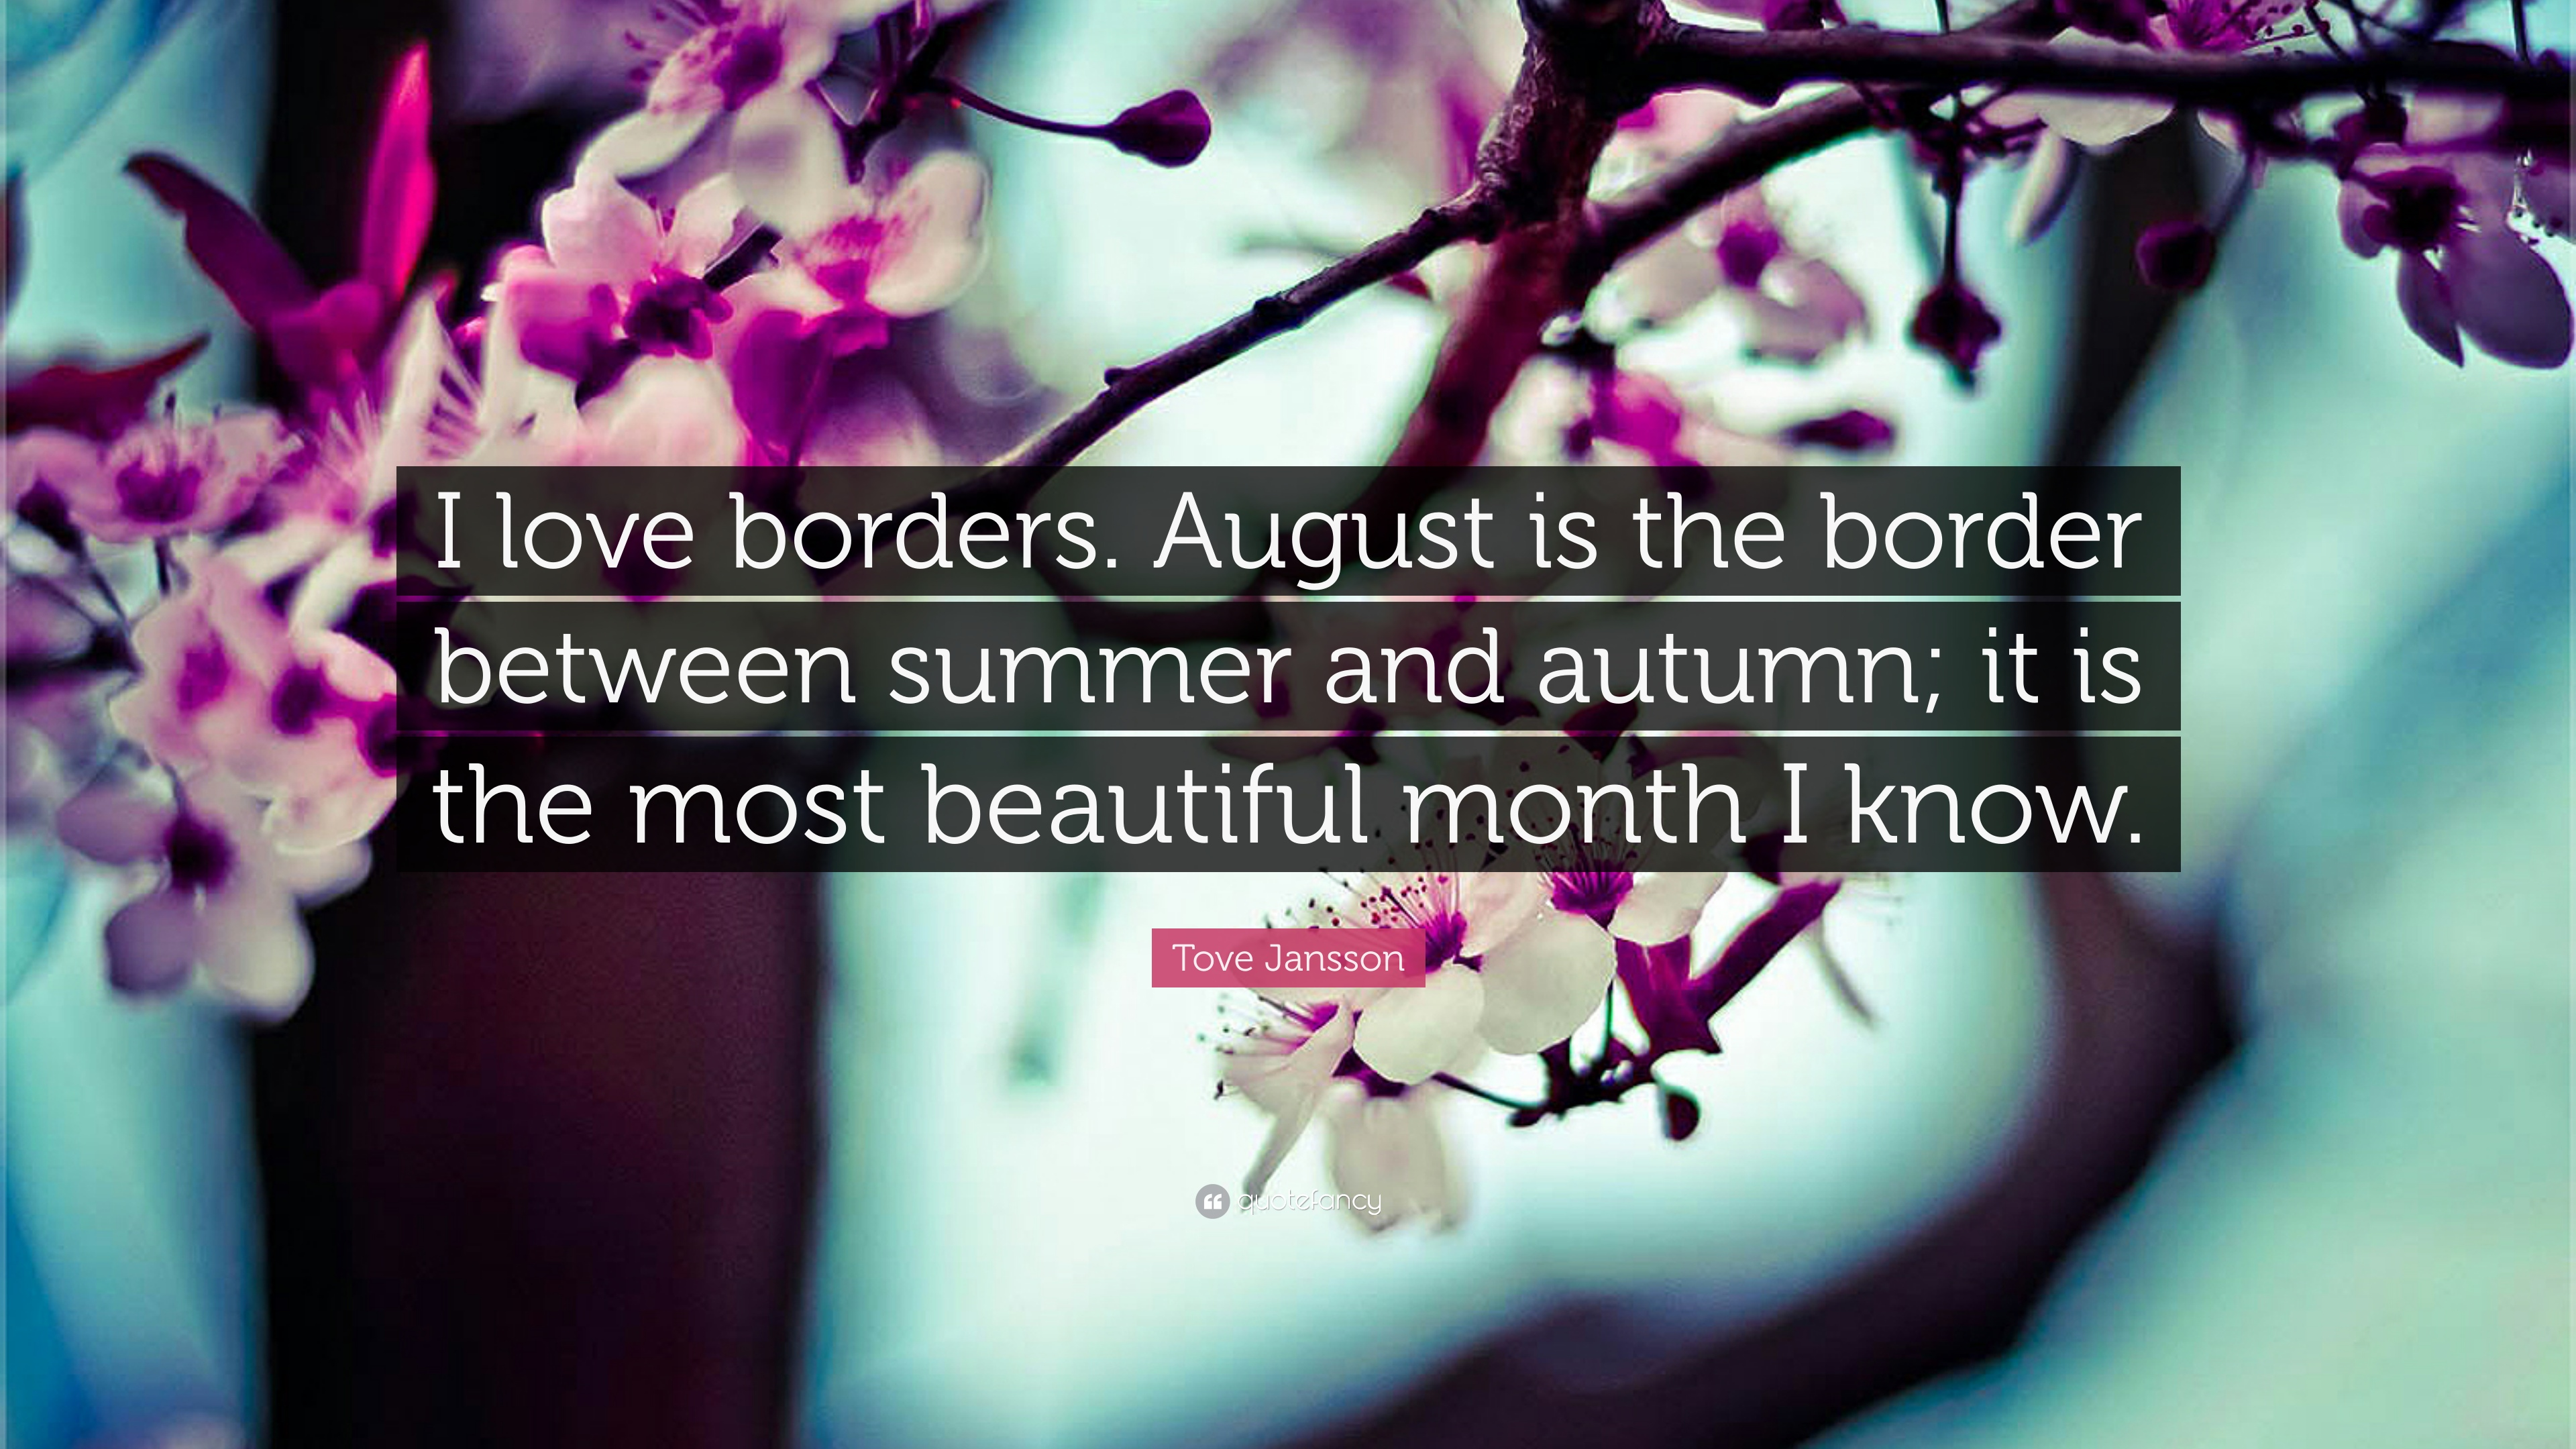 7 Wallpapers Tove Jansson Quote I Love Borders August Is The Border Between Summer And